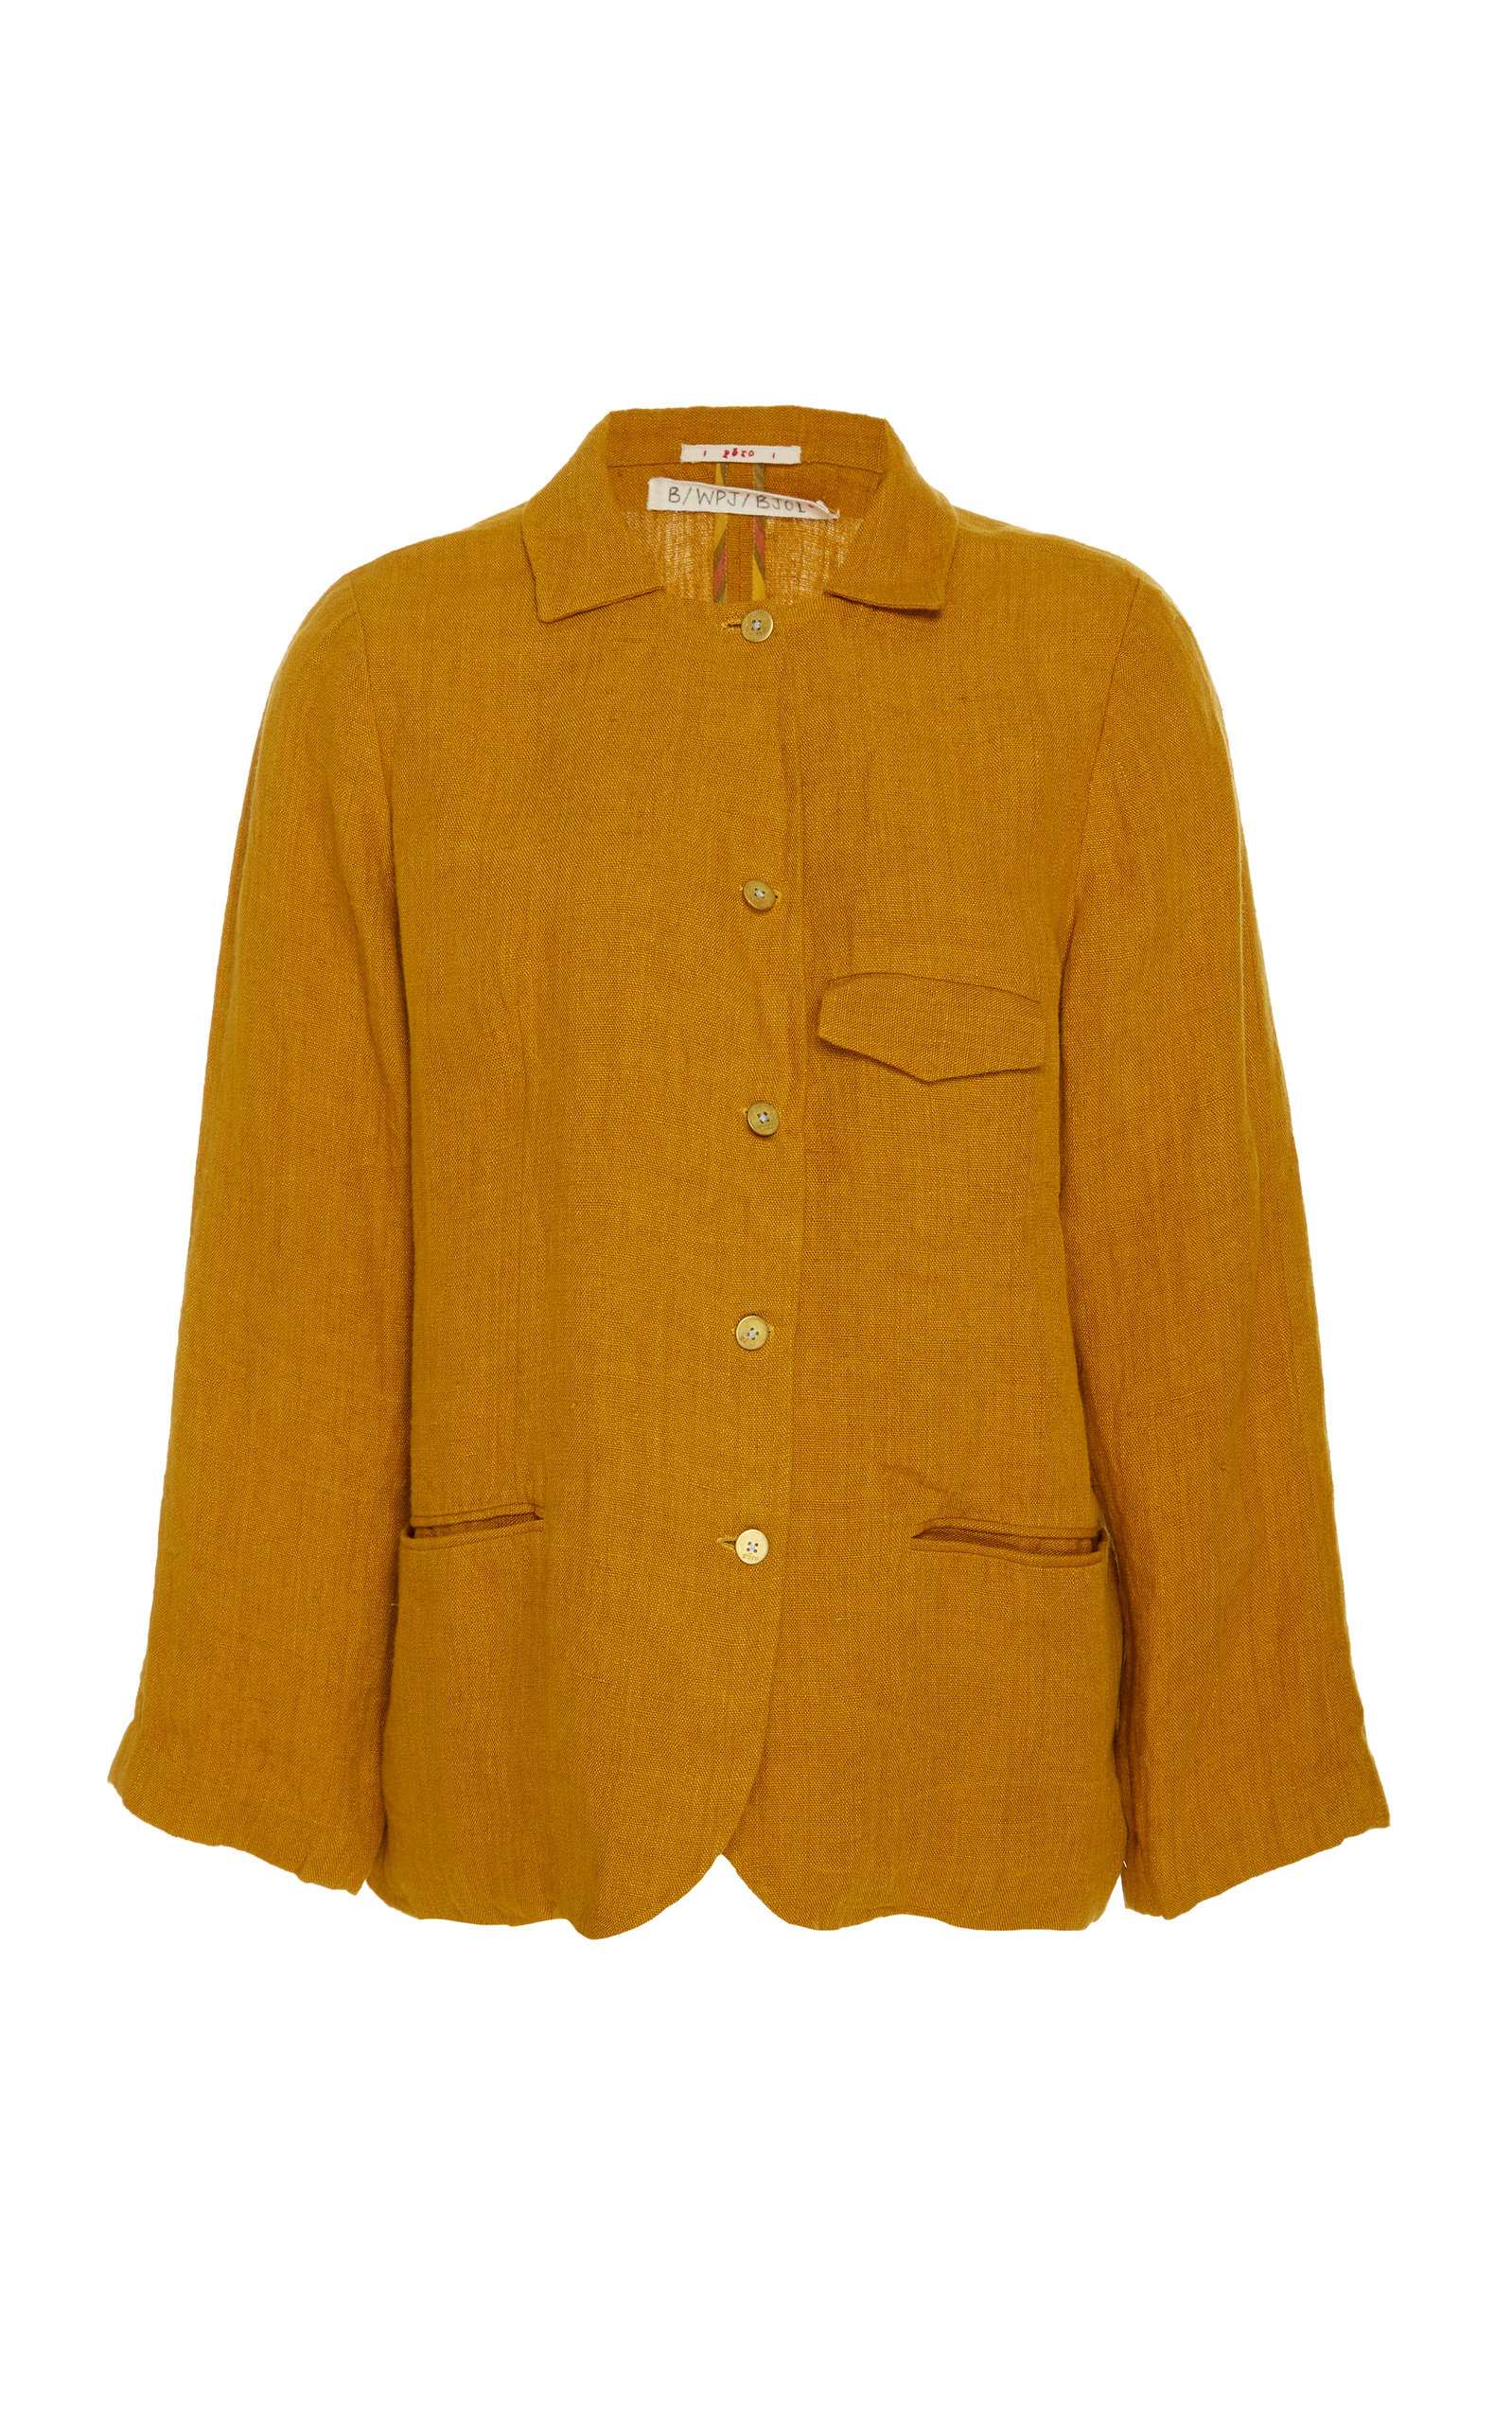 PÉRO Tailored Linen Jacket in Yellow